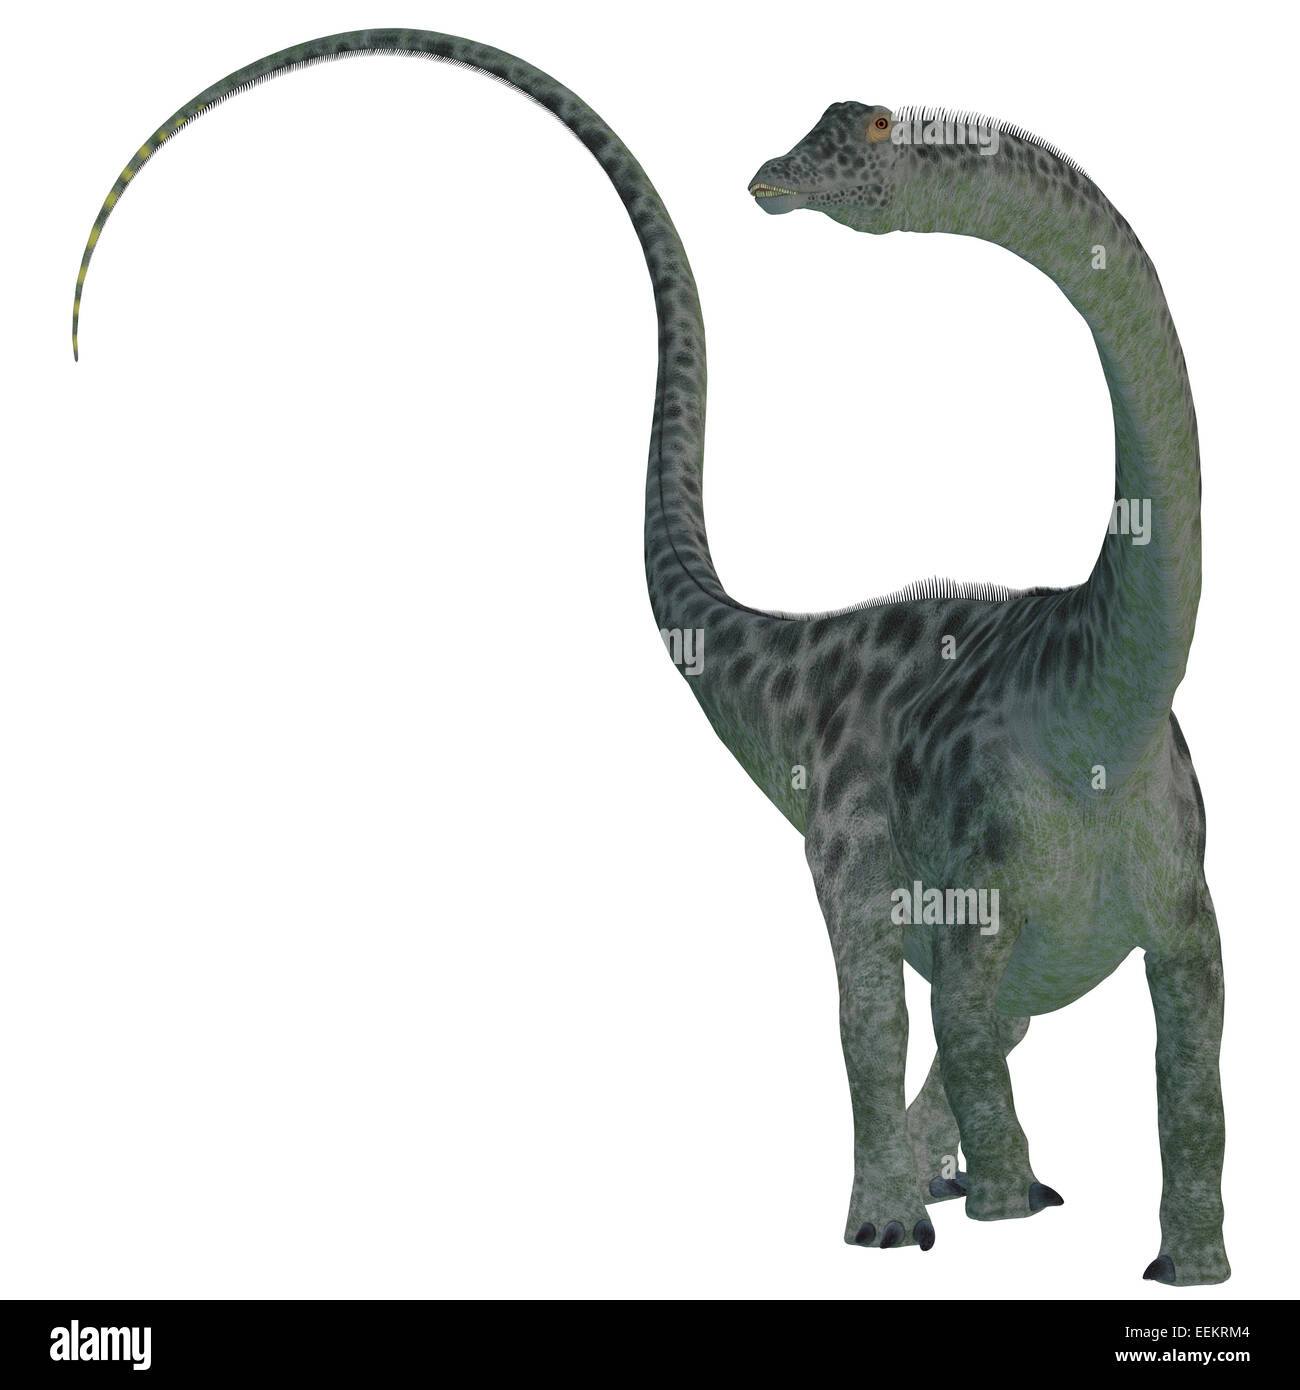 Diplodocus was a sauropod herbivorous dinosaur that lived in the Jurassic Era of North America. - Stock Image